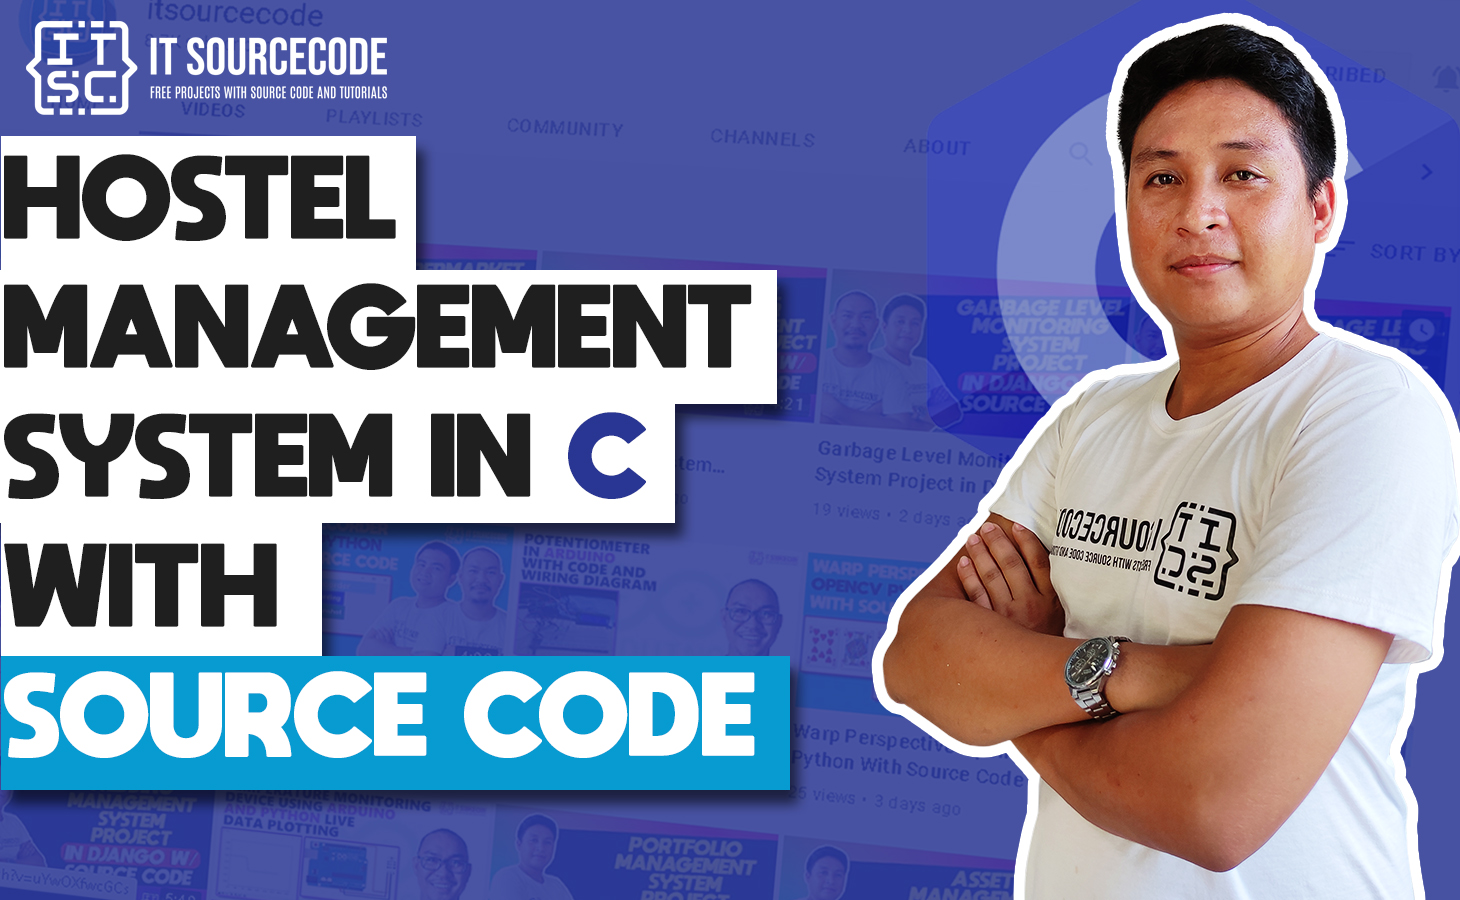 Hostel Management System in C with Source Code